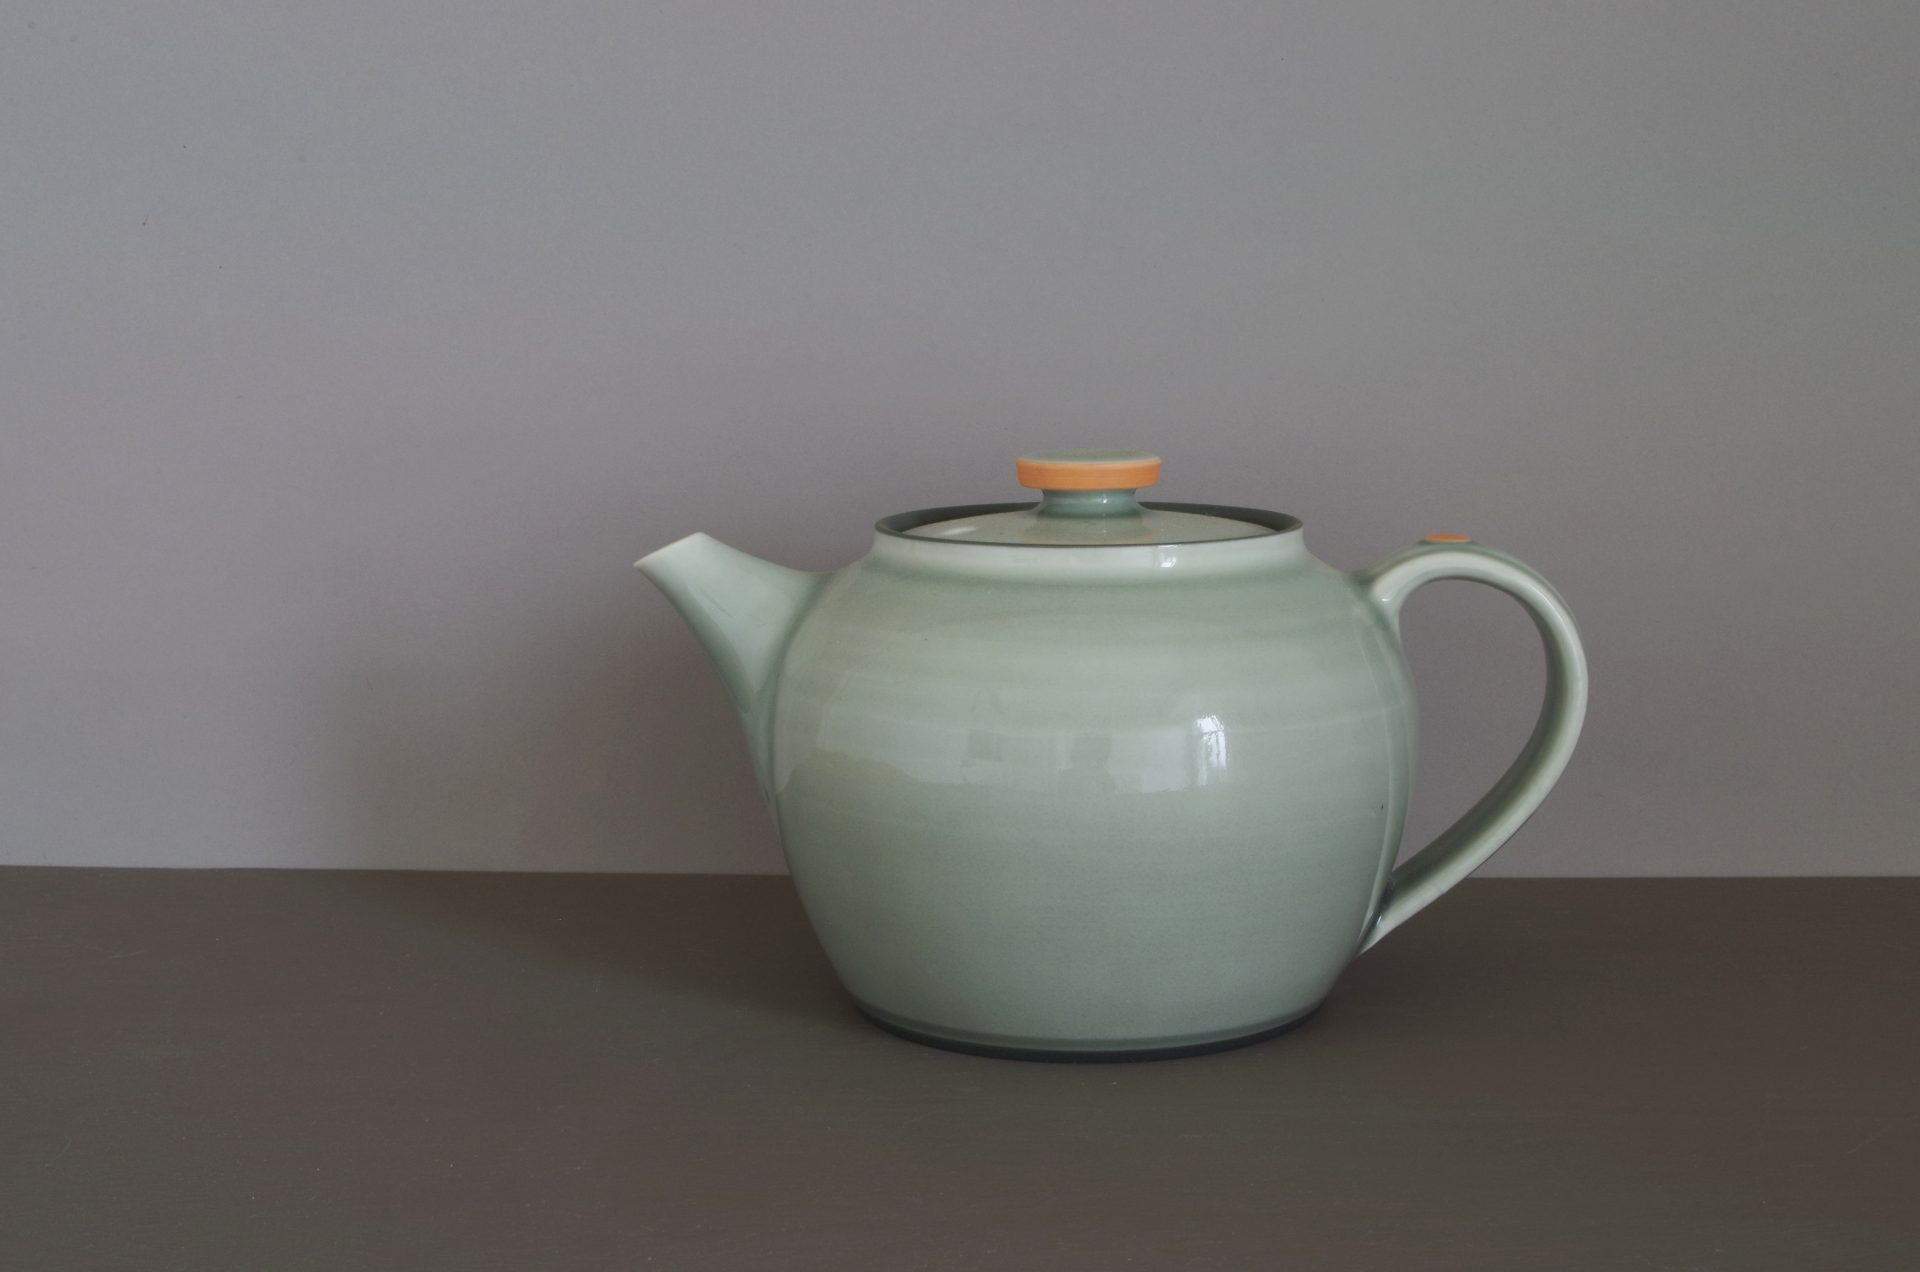 grey/orange teapot by James and Tilla Waters